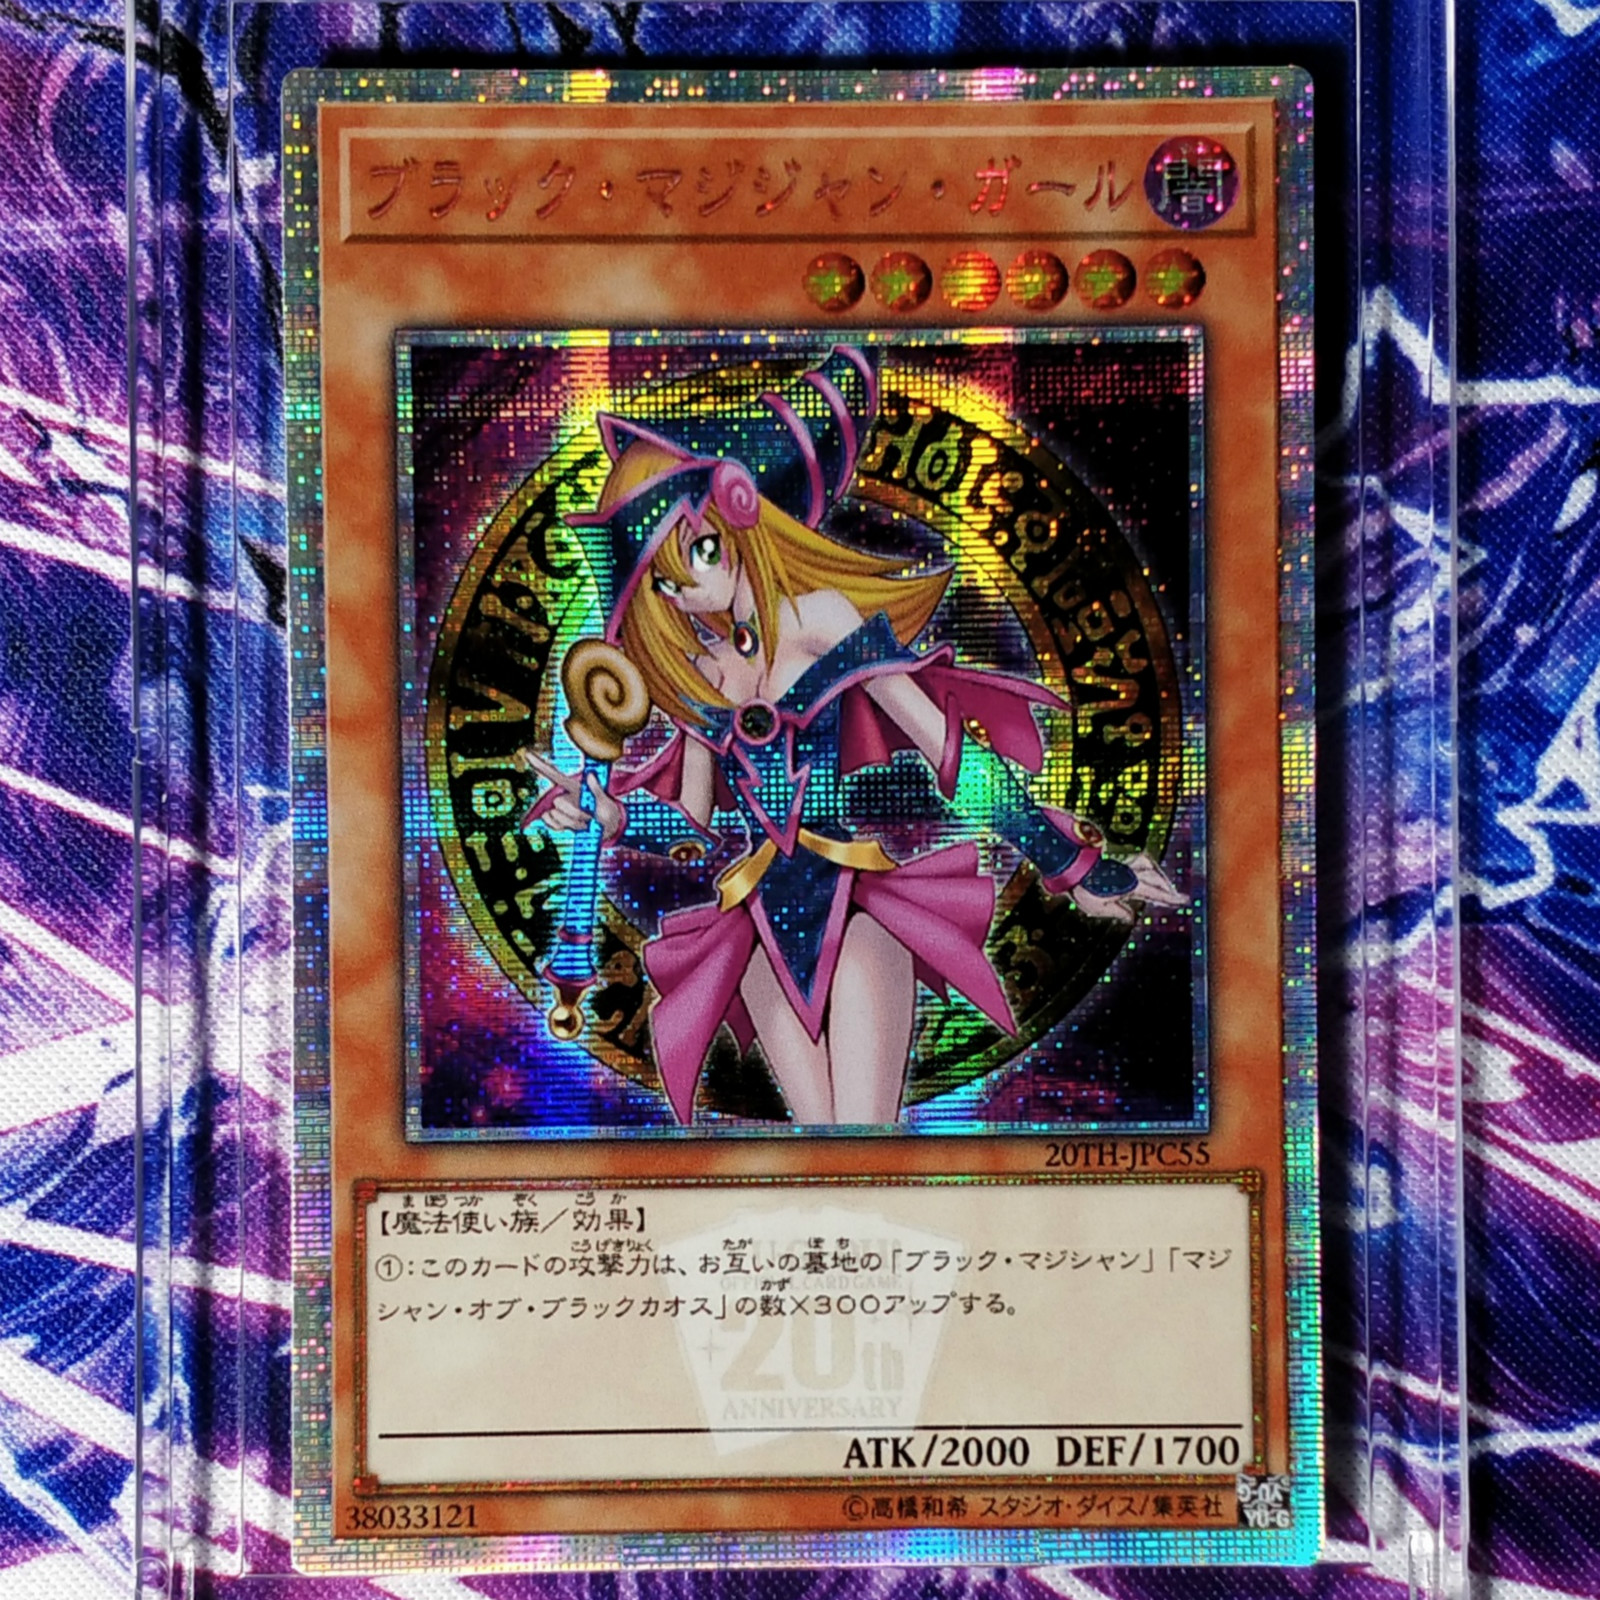 Yu Gi Oh Dark Magician Girl DIY Colorful Toys Hobbies Hobby Collectibles Game Collection Anime Cards